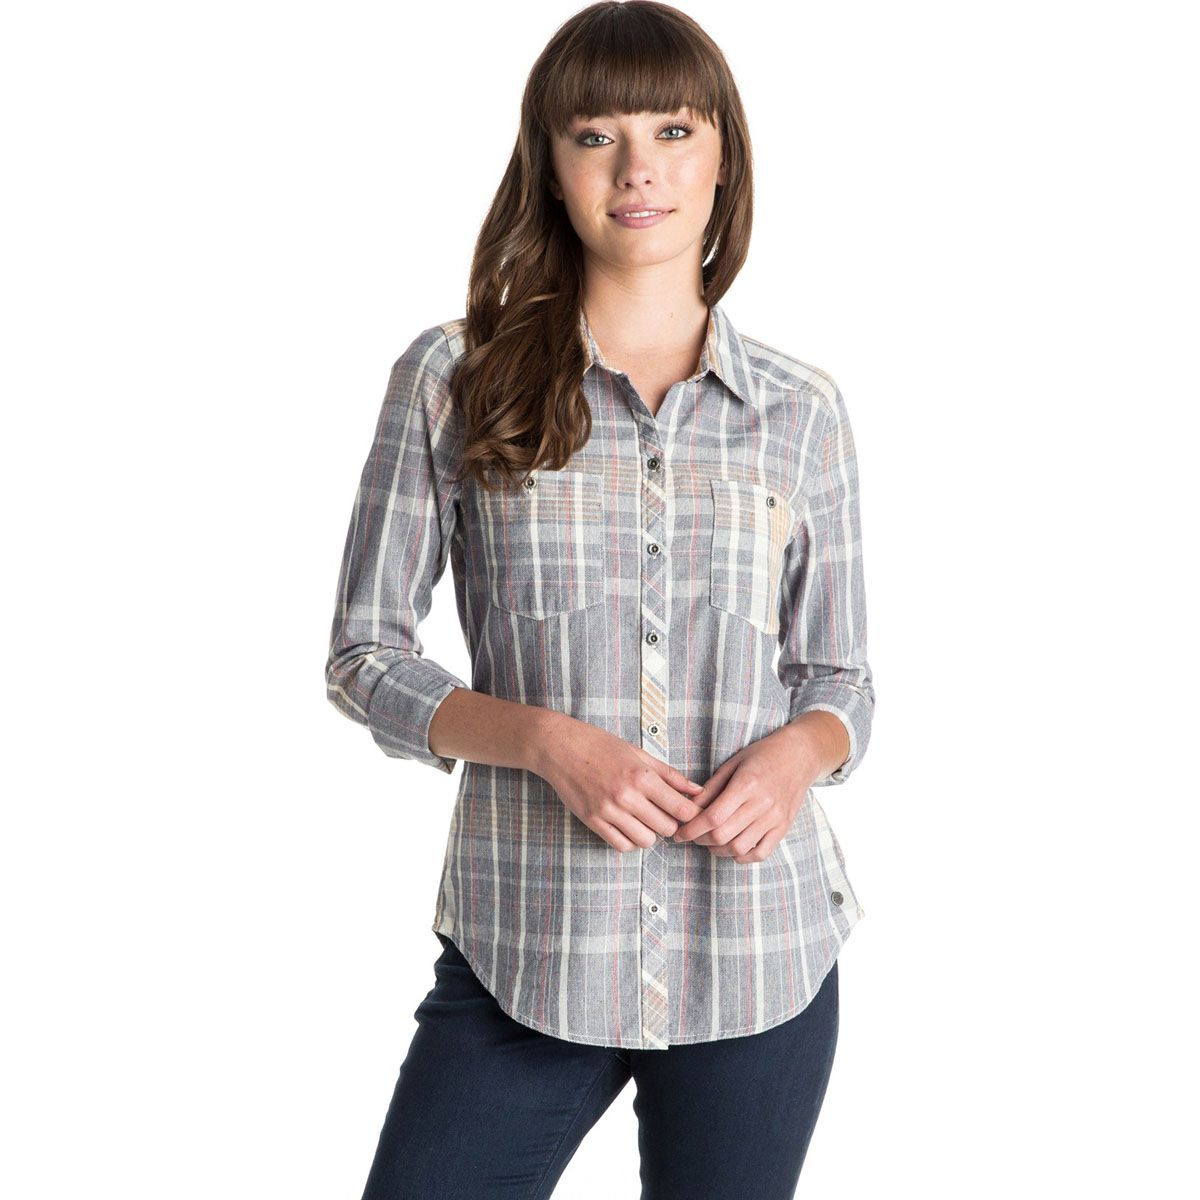 Long sleeve dress shirts that hang out